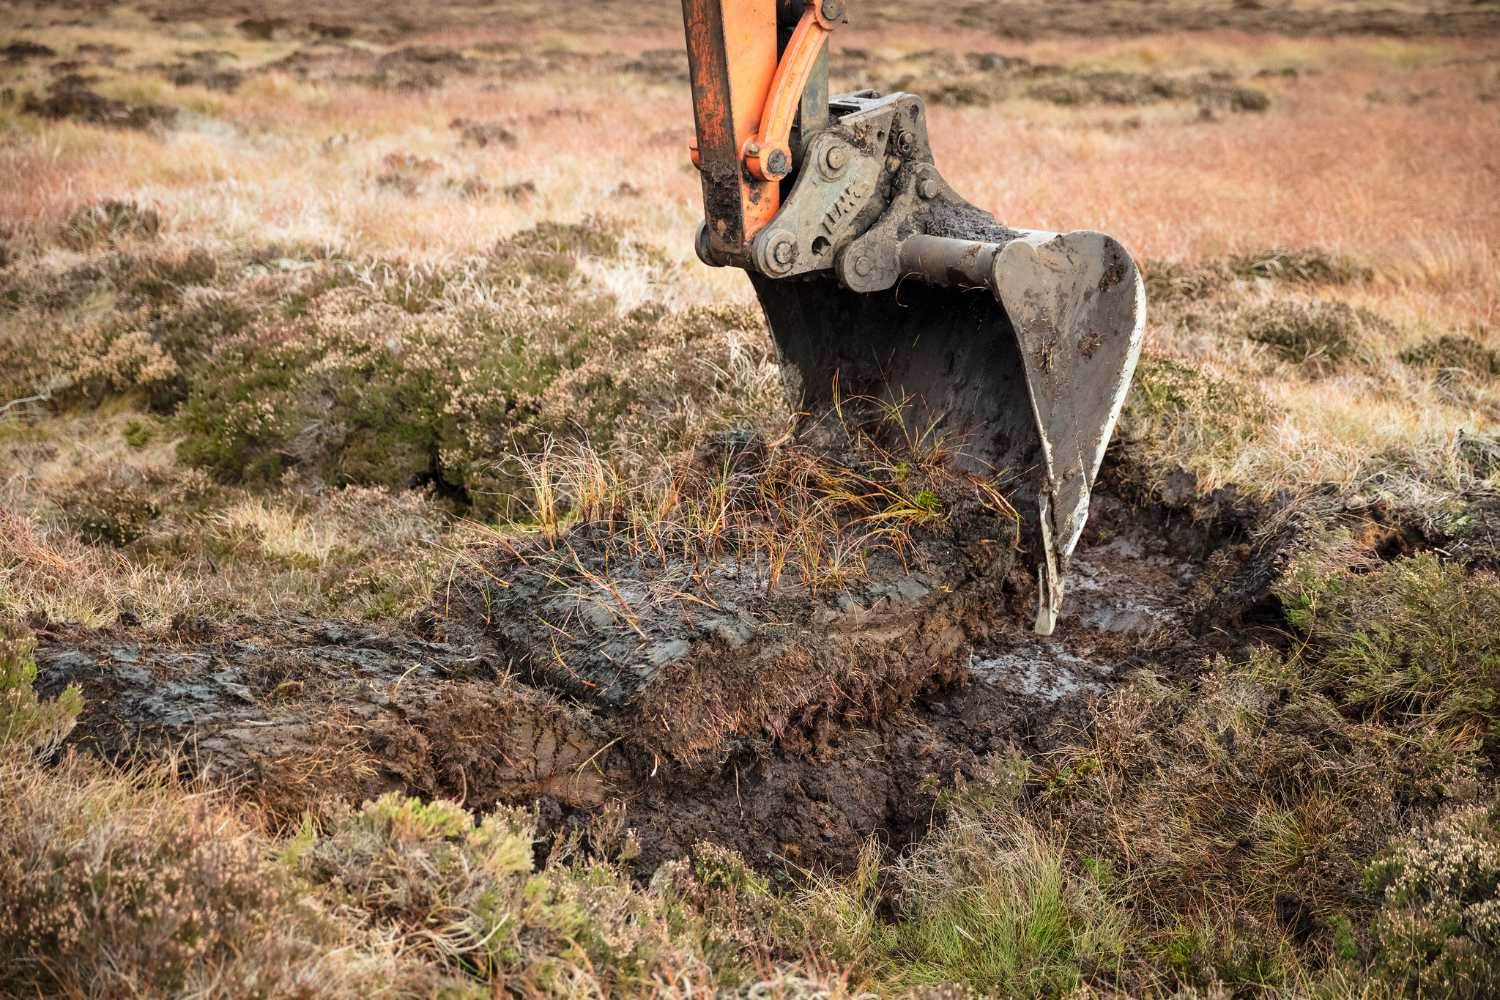 A peat dam being created with a digger